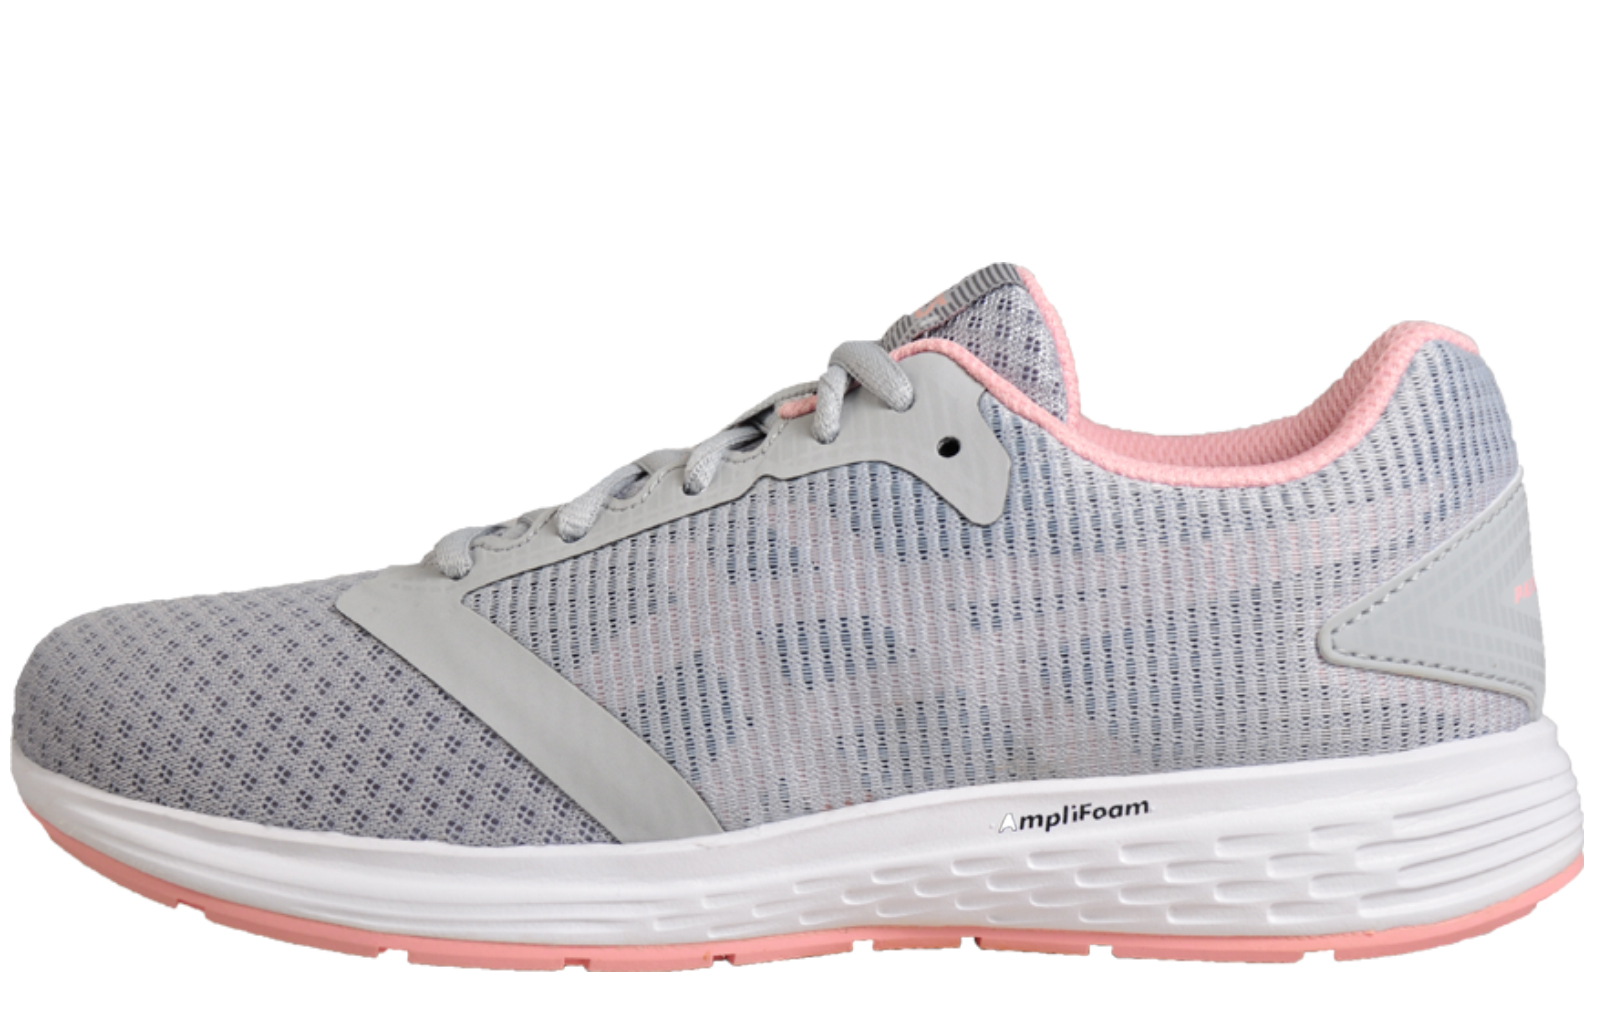 b20452d7102 Cheap ASICS Trainers   Shoes for Women